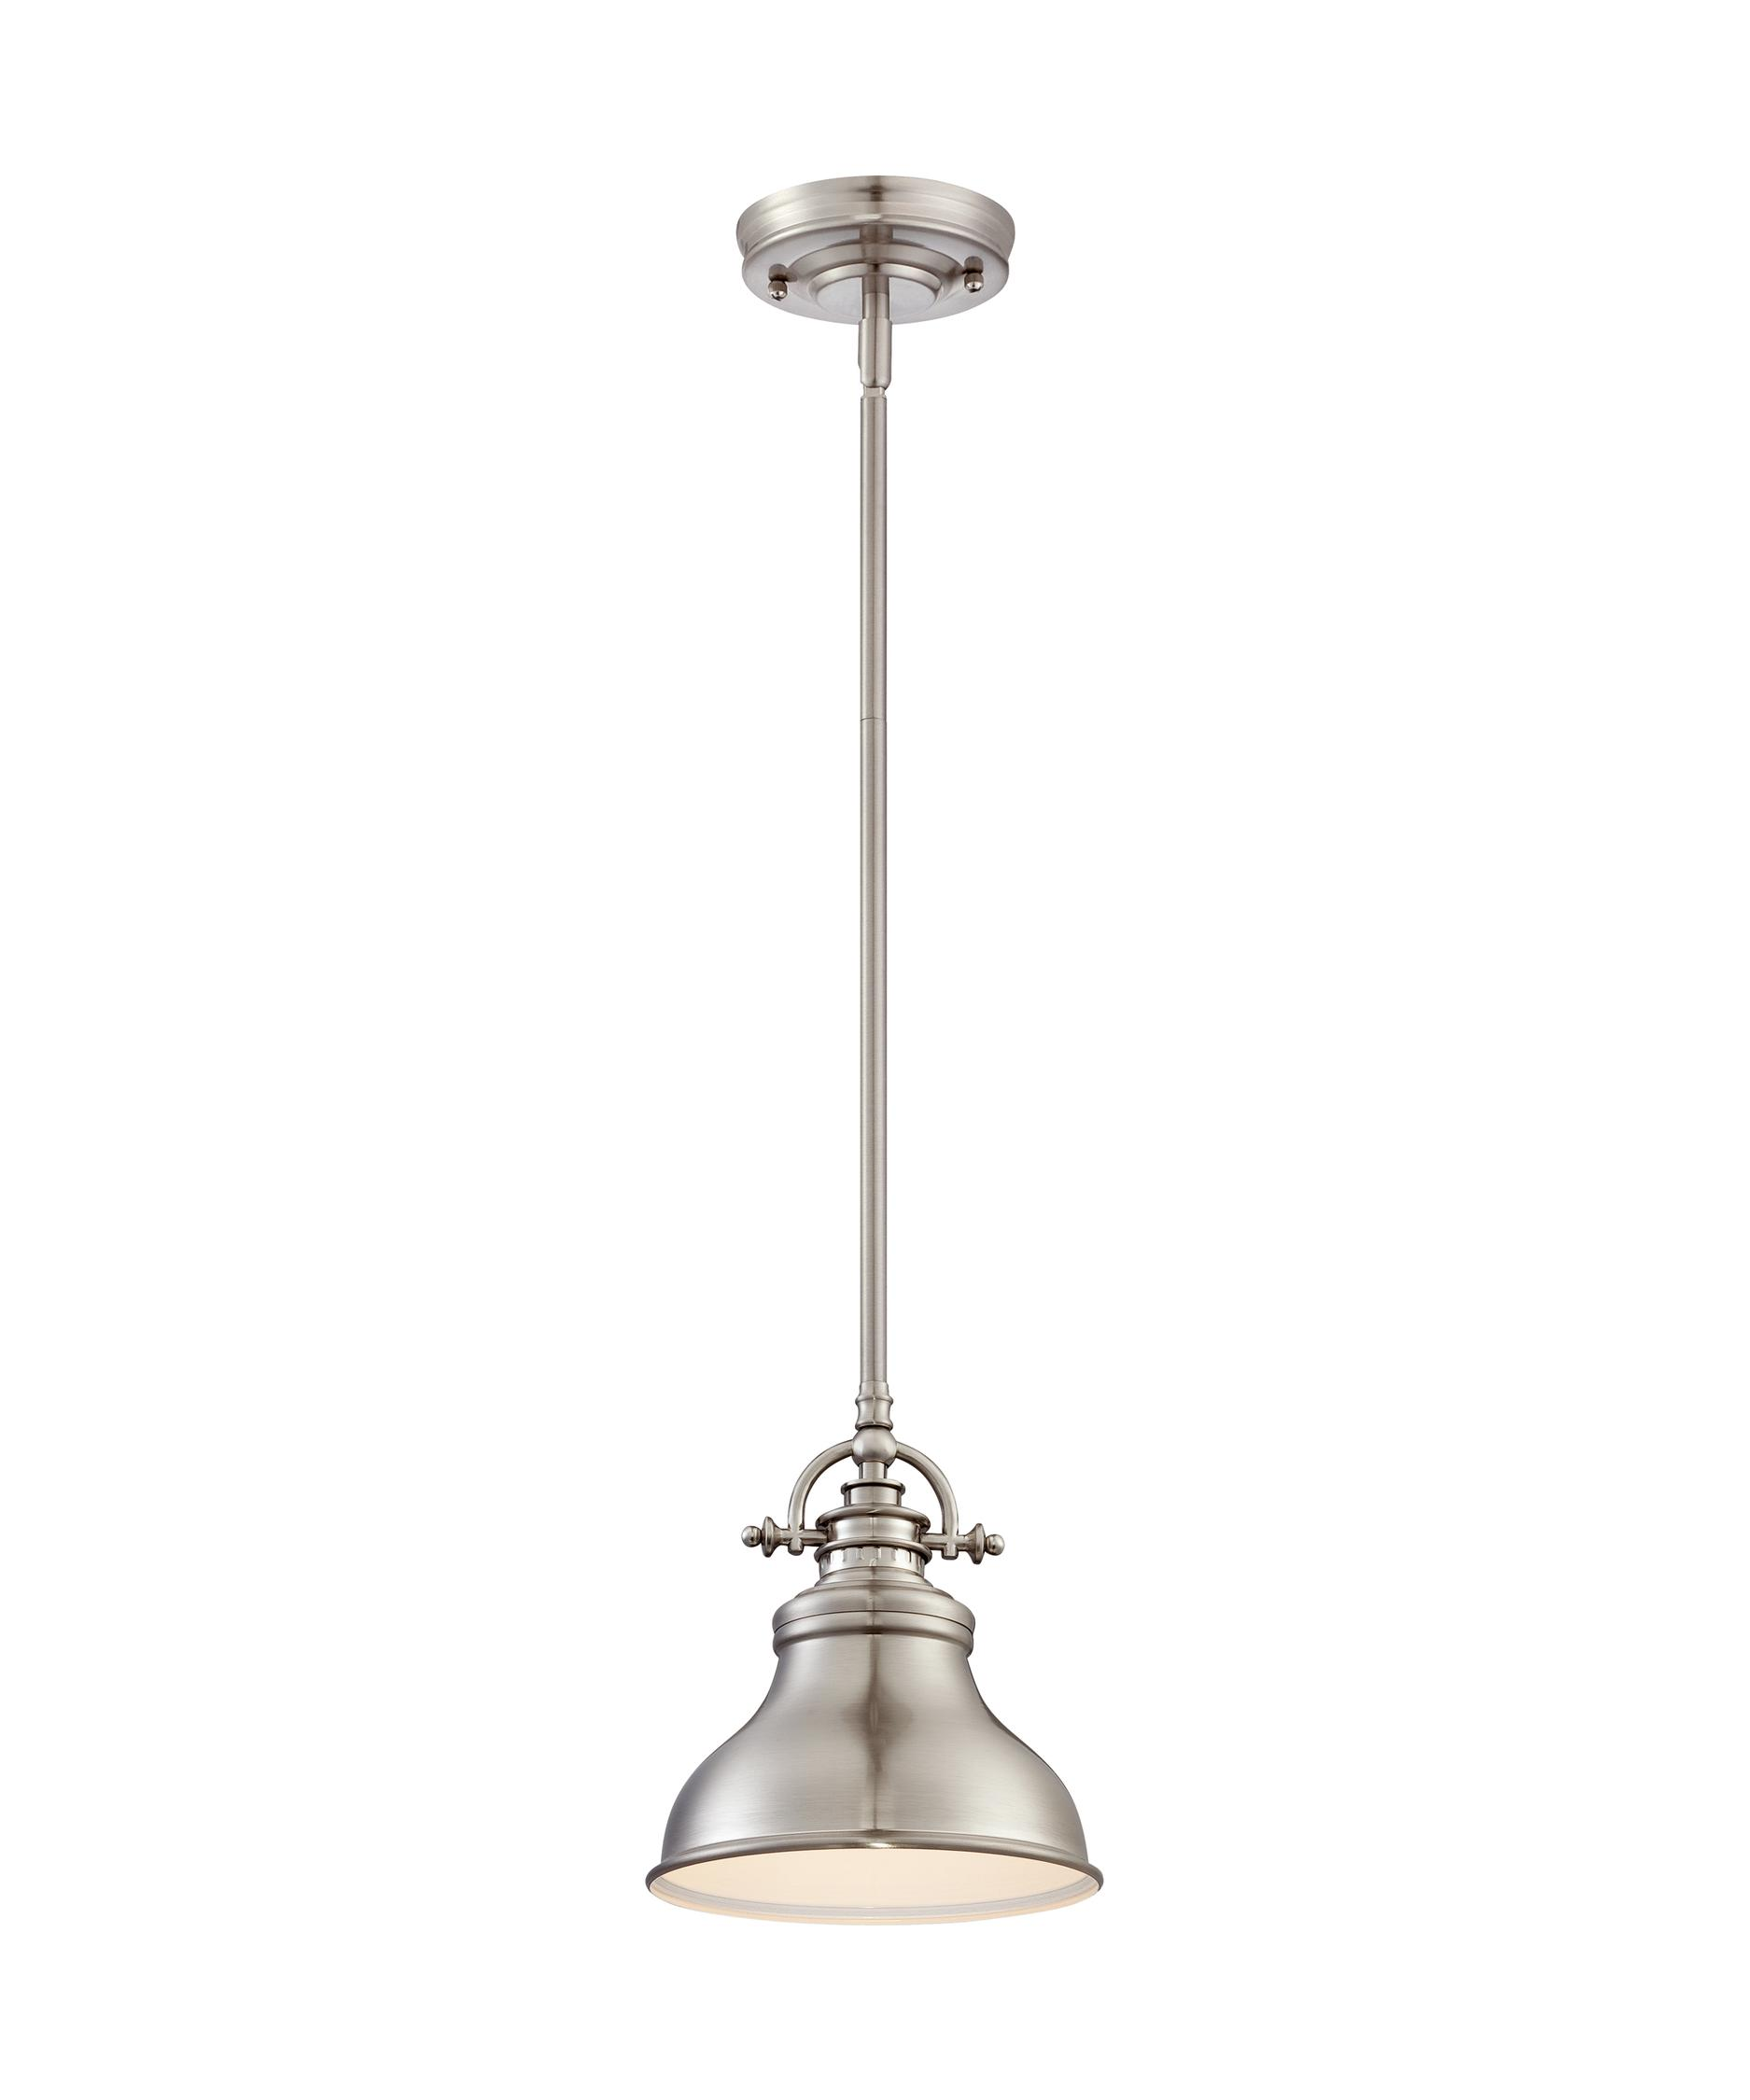 quoizel er1508 emery 8 inch wide 1 light mini pendant capitol